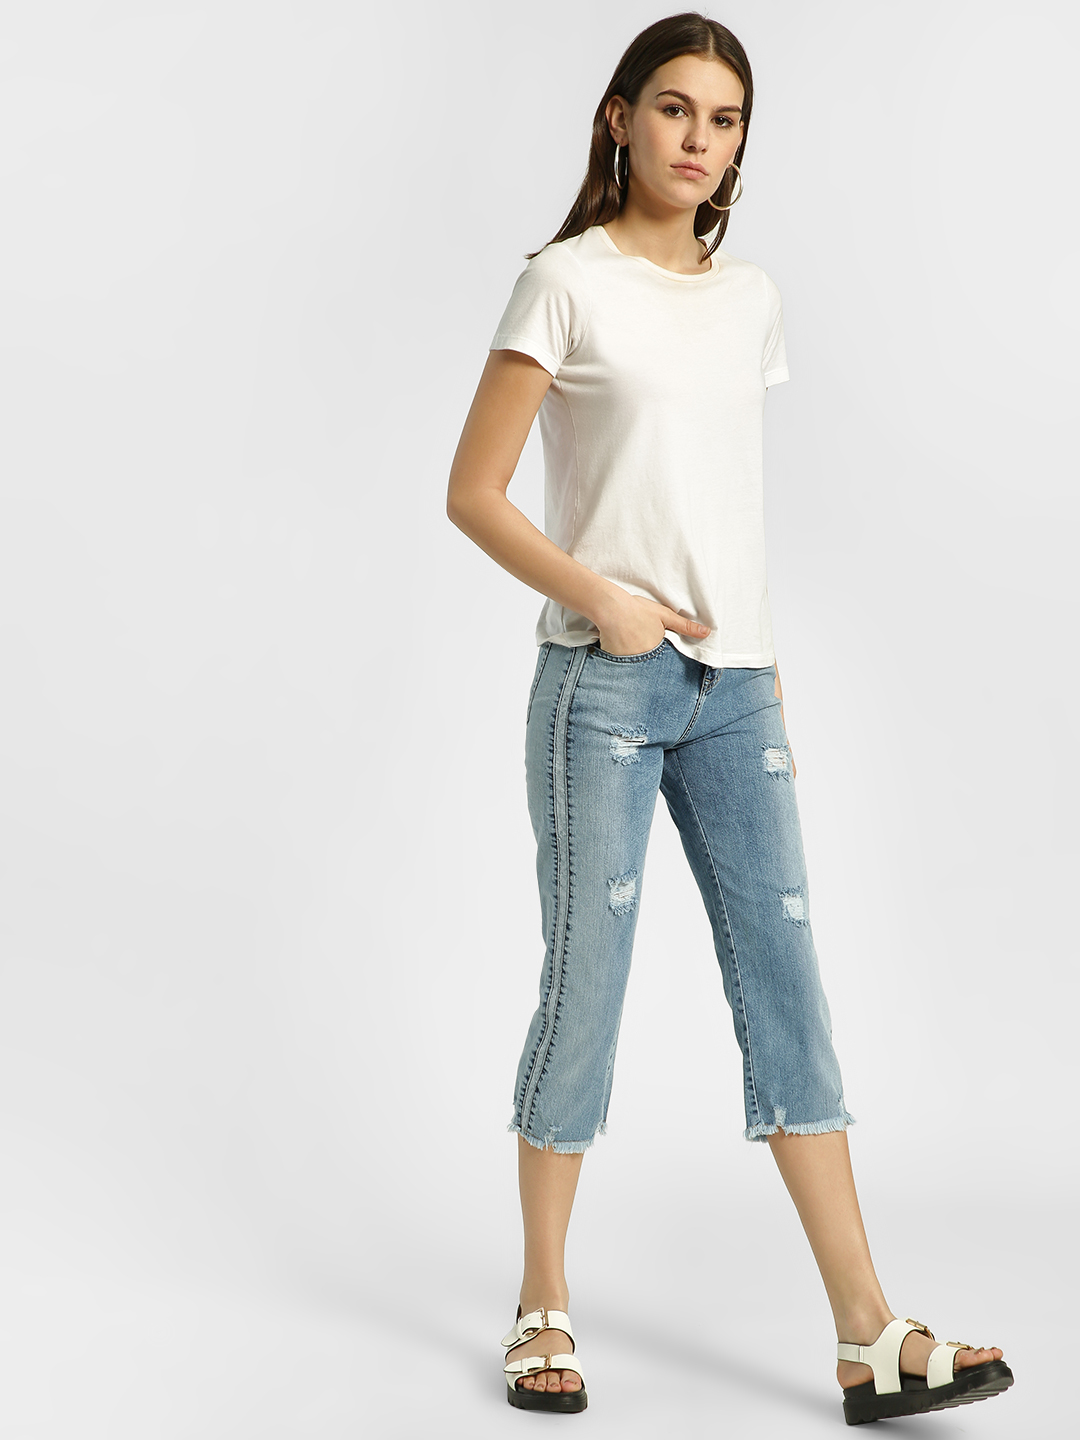 HEY Blue Light Wash Distressed & Cropped Boyfriend Jeans 1